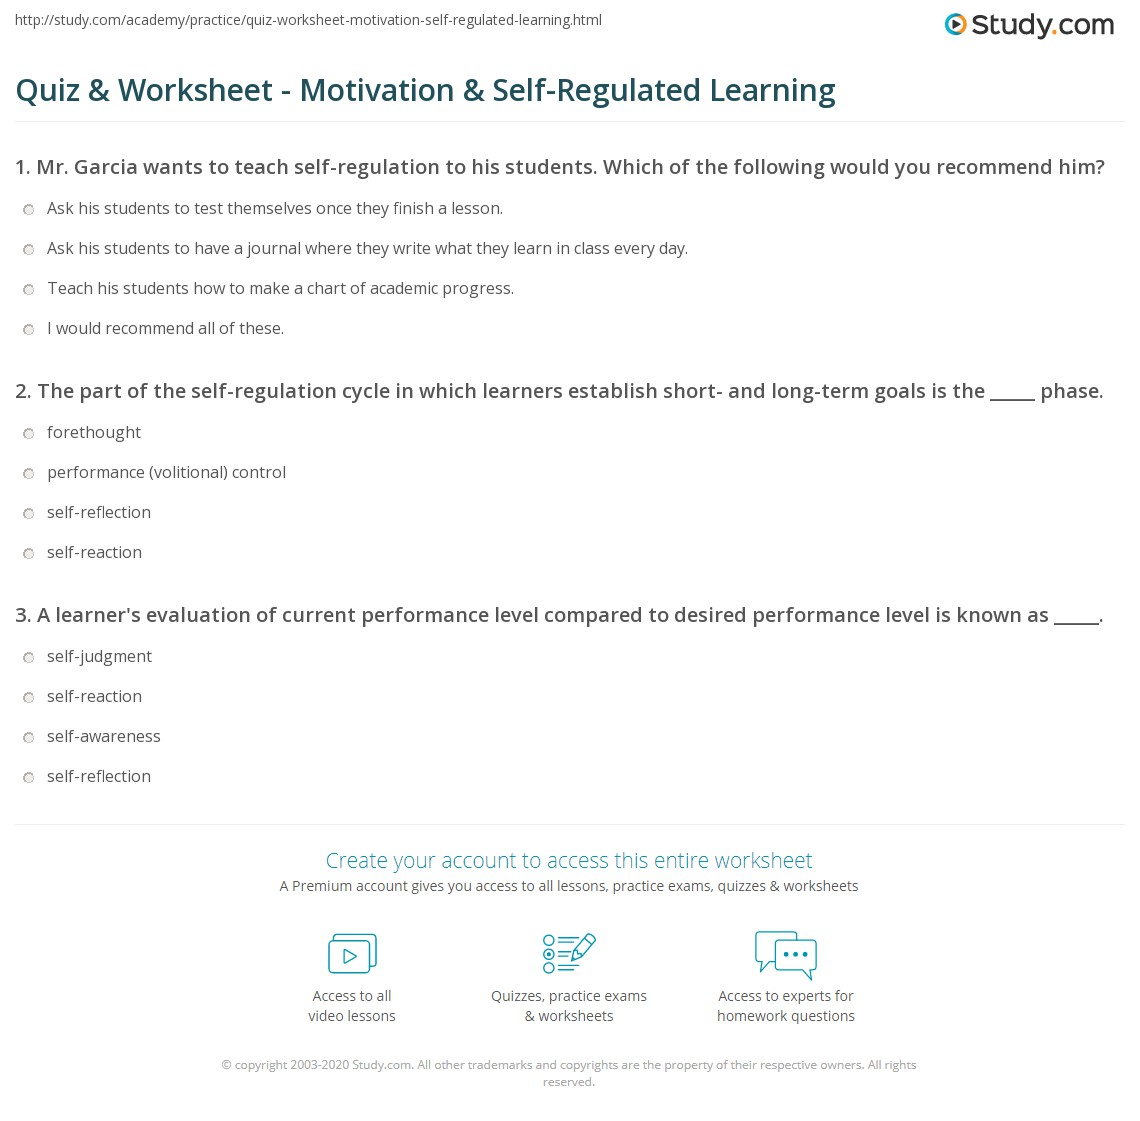 Worksheets Self Motivation Worksheets quiz worksheet motivation self regulated learning study com print the role of in worksheet